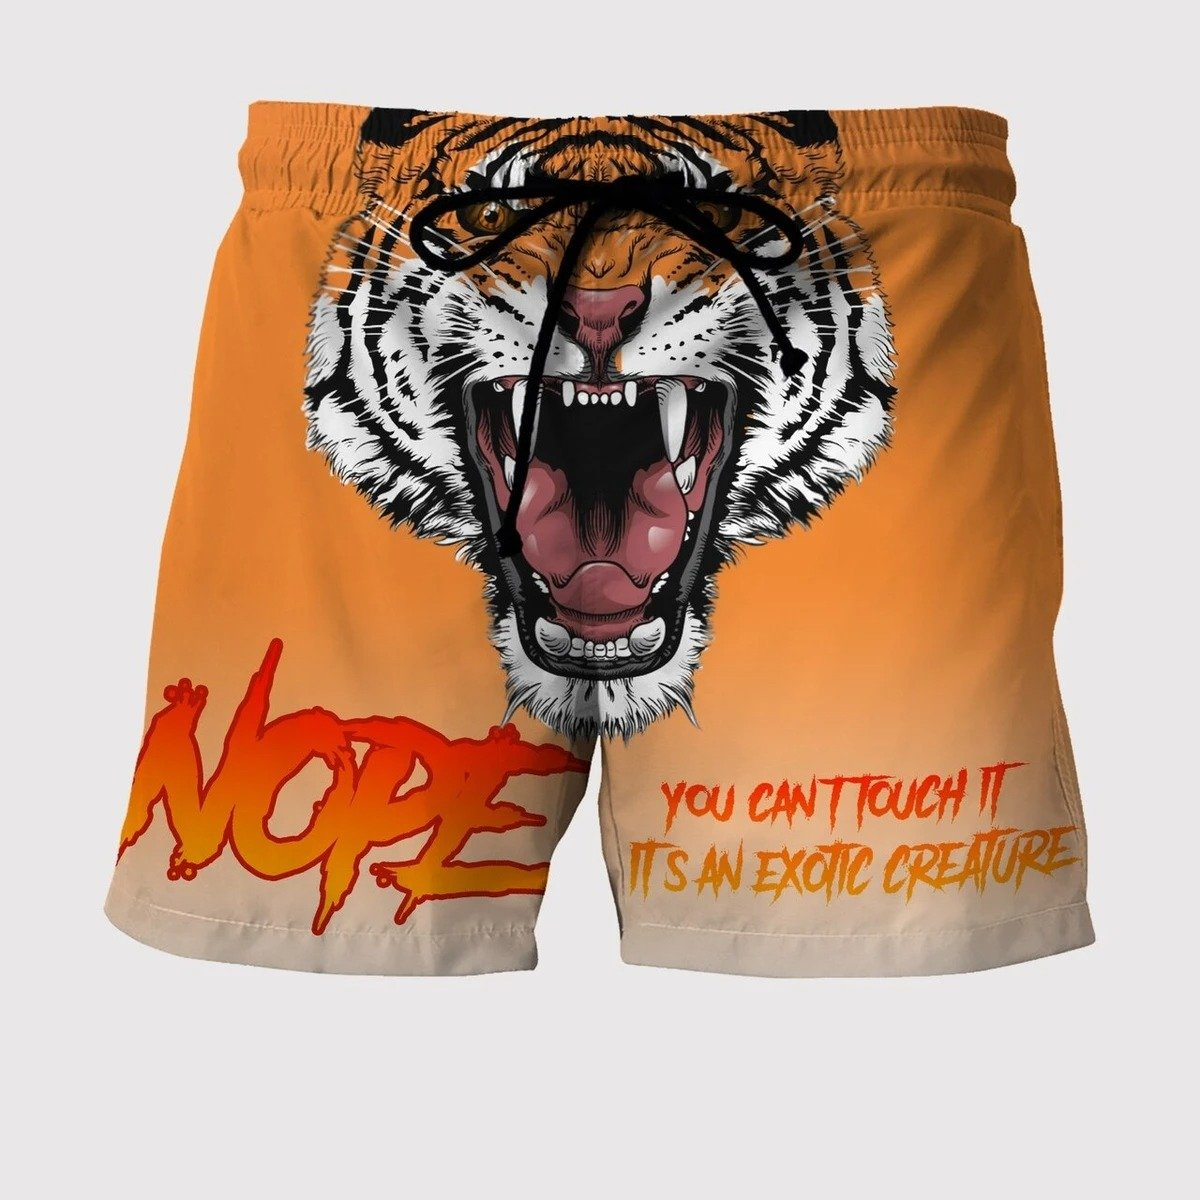 Nope - You Can't Touch It - Custom Beach Shorts - Swim Trunks